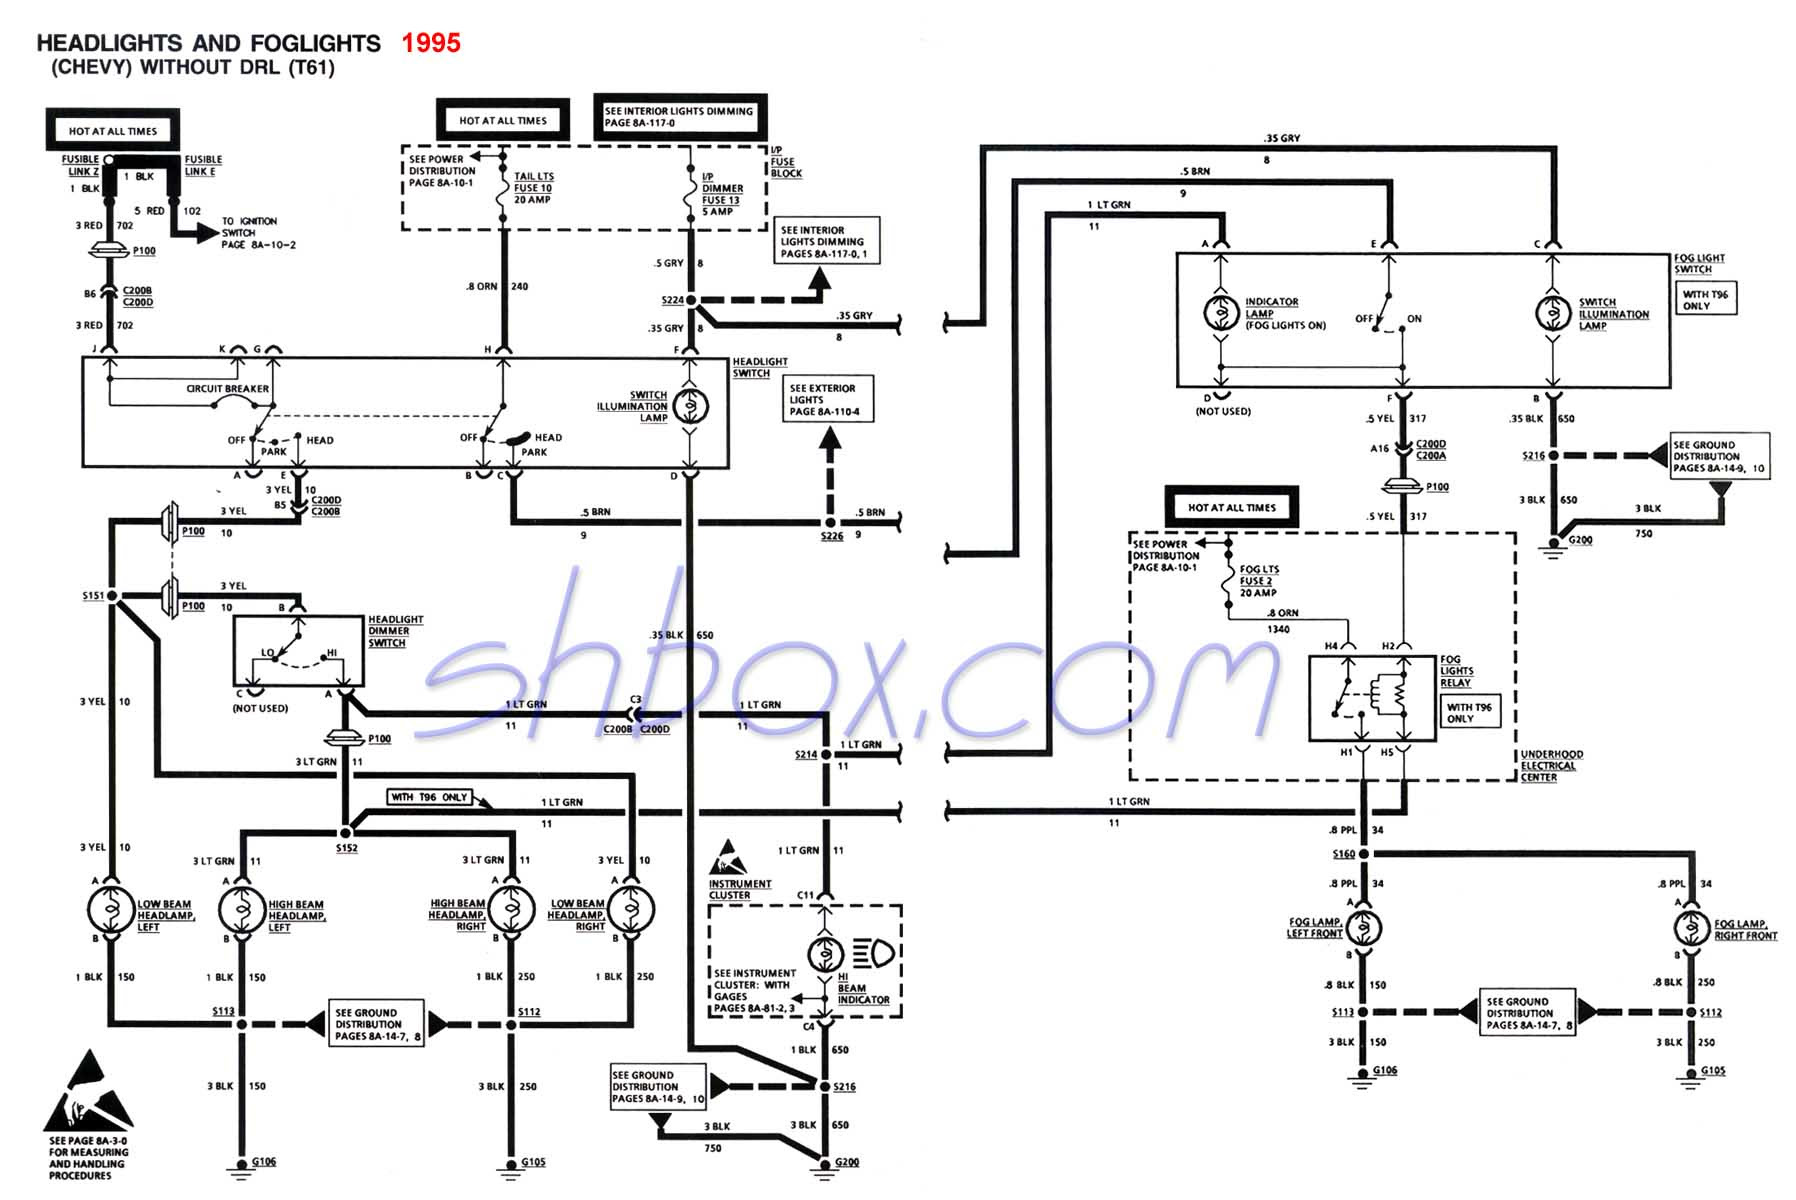 2000 Chevy Camaro Headlight Wiring Diagram Wiring Diagrams Name Name Miglioribanche It